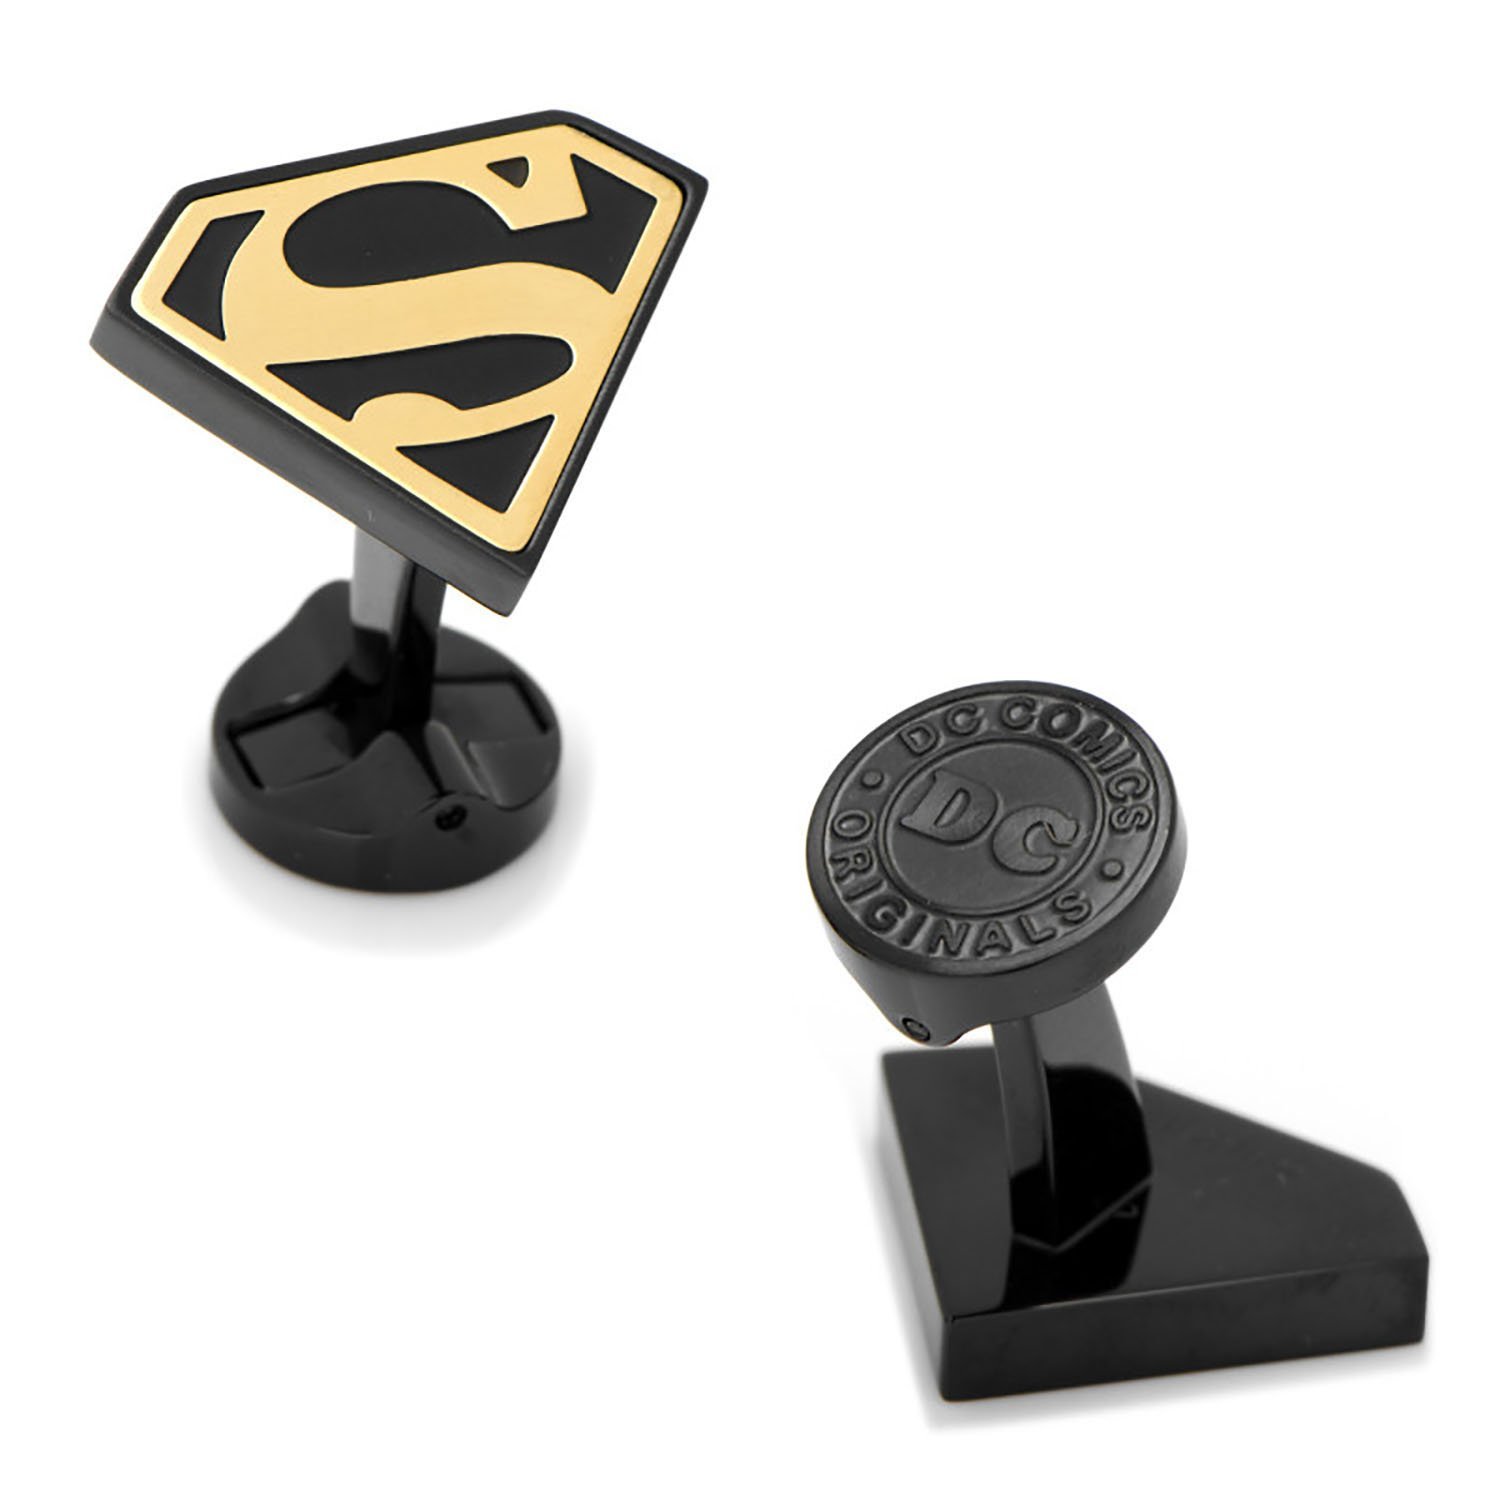 Stainless Steel Black and Gold Superman Cufflinks by DC Comics Cufflinks